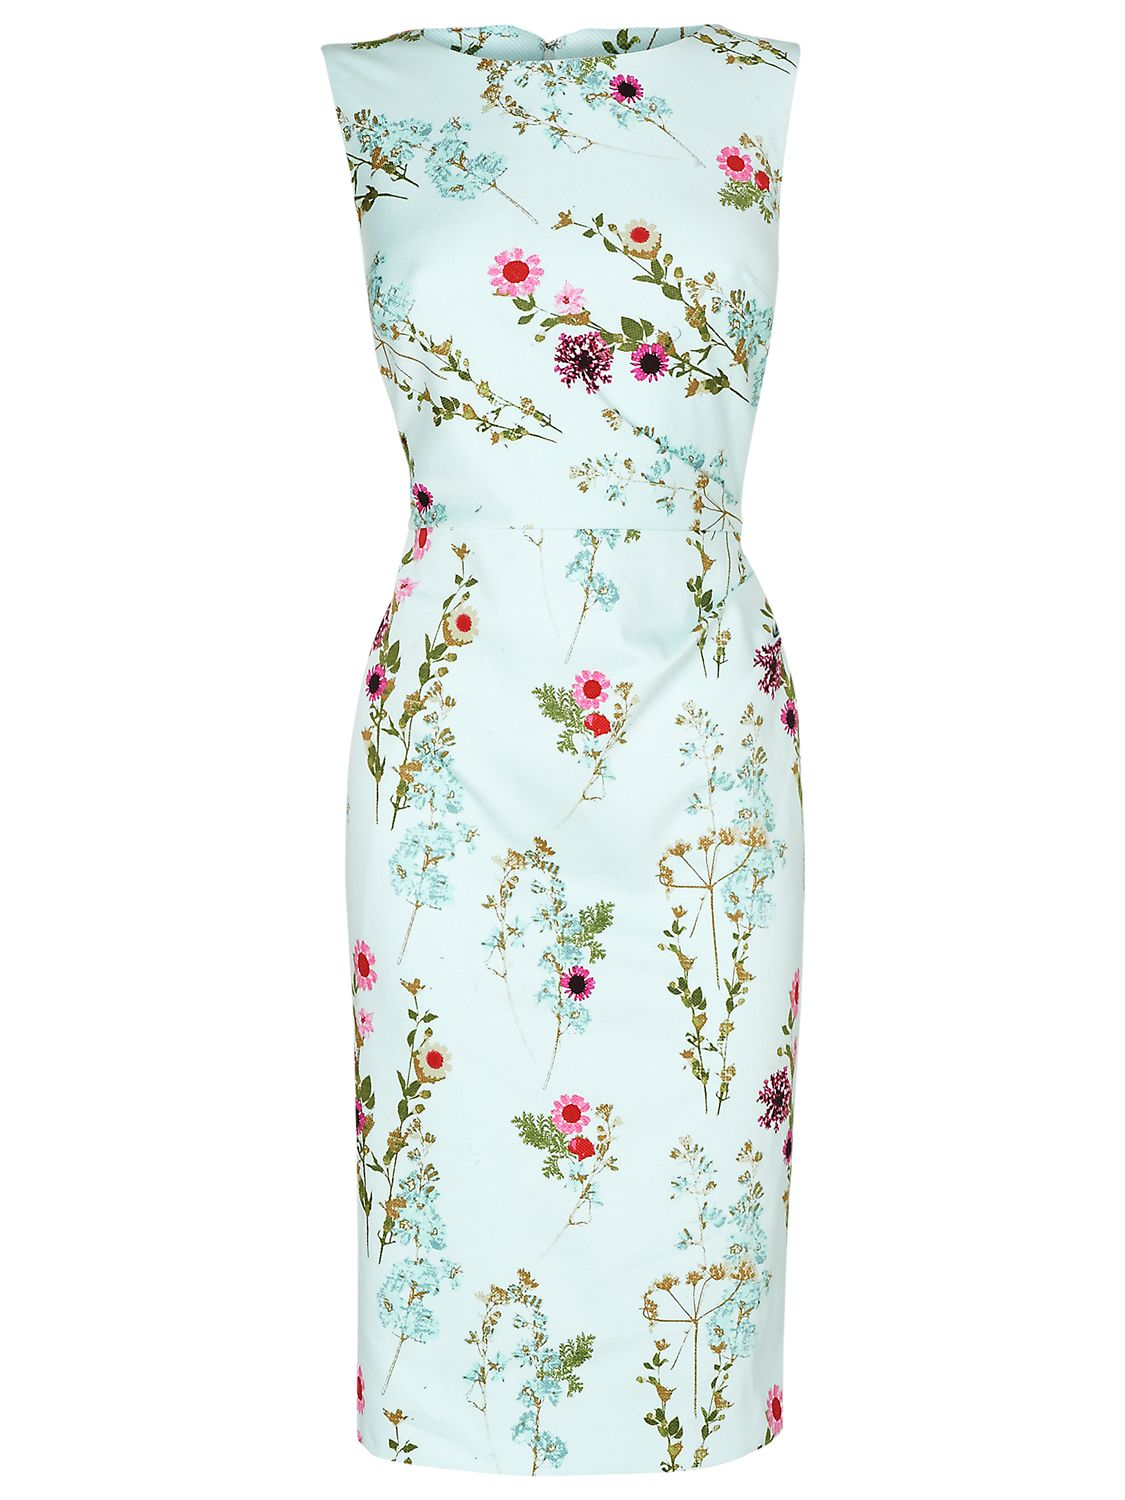 phase eight hermosa dress multi, phase, eight, hermosa, dress, multi, phase eight, 12 10 14 18 16 8, women, womens dresses, special offers, womenswear offers, 20% off full price phase eight, fashion magazine, brands l-z, inactive womenswear, 1877508